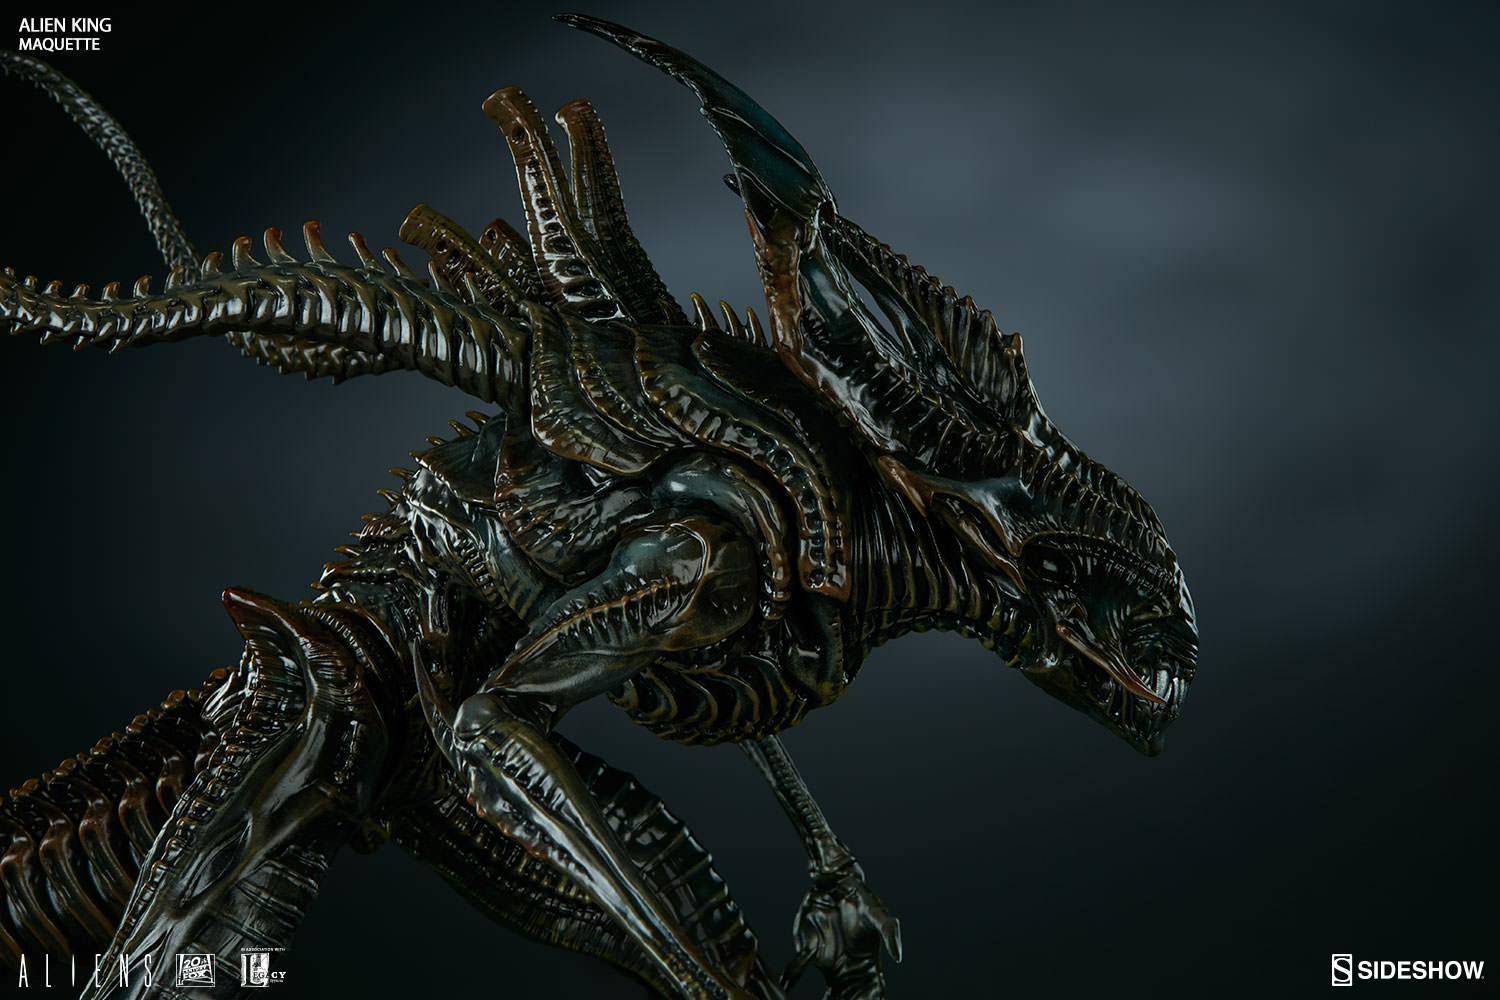 Xenomorph Emperor Alien King Maquette Ph...